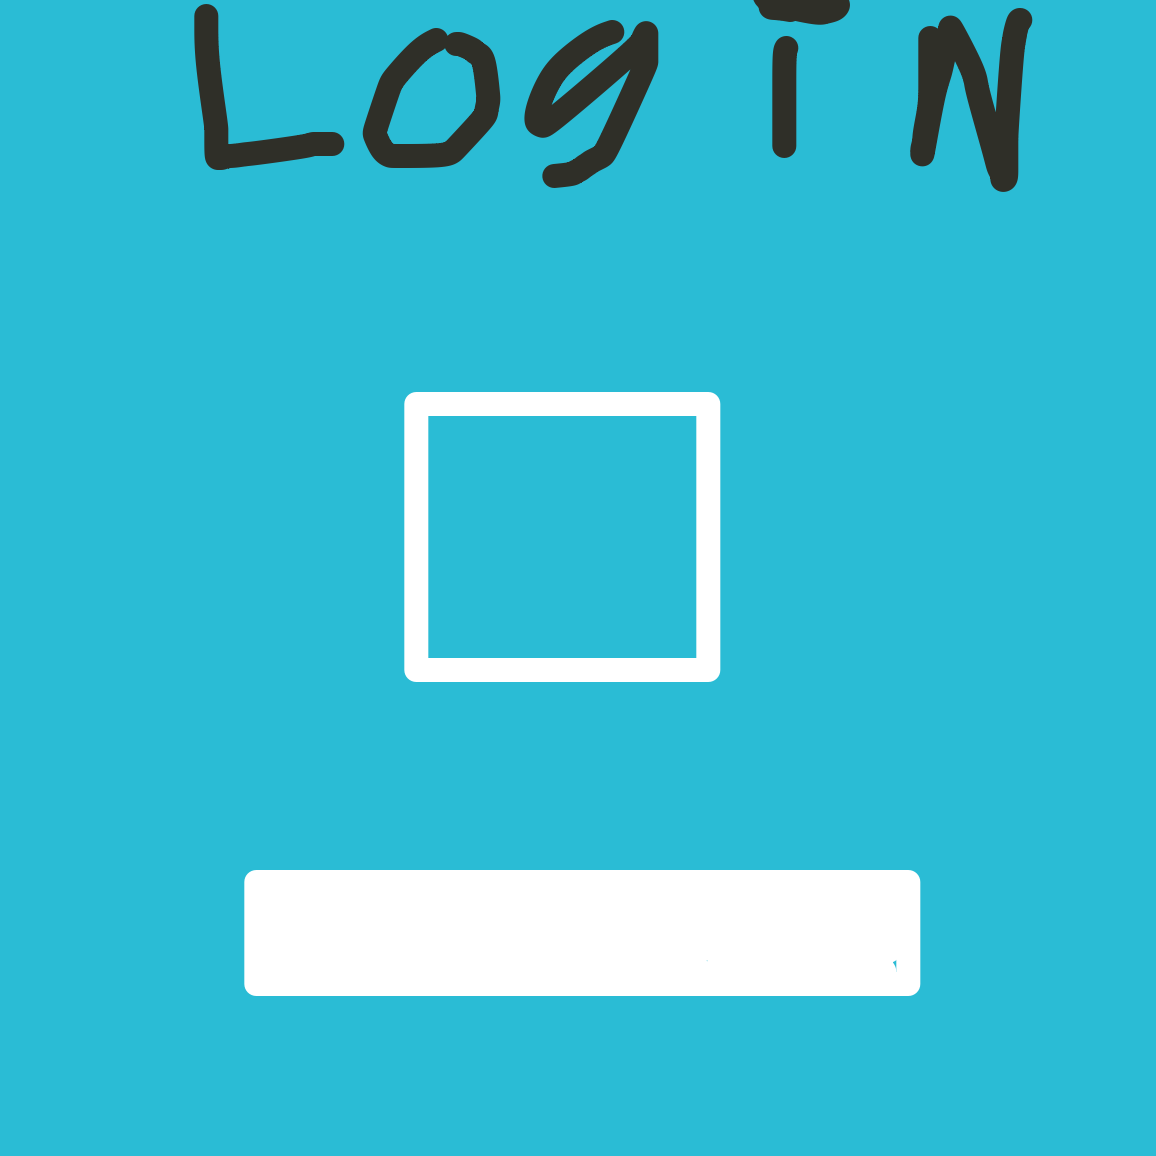 Rebooting system...